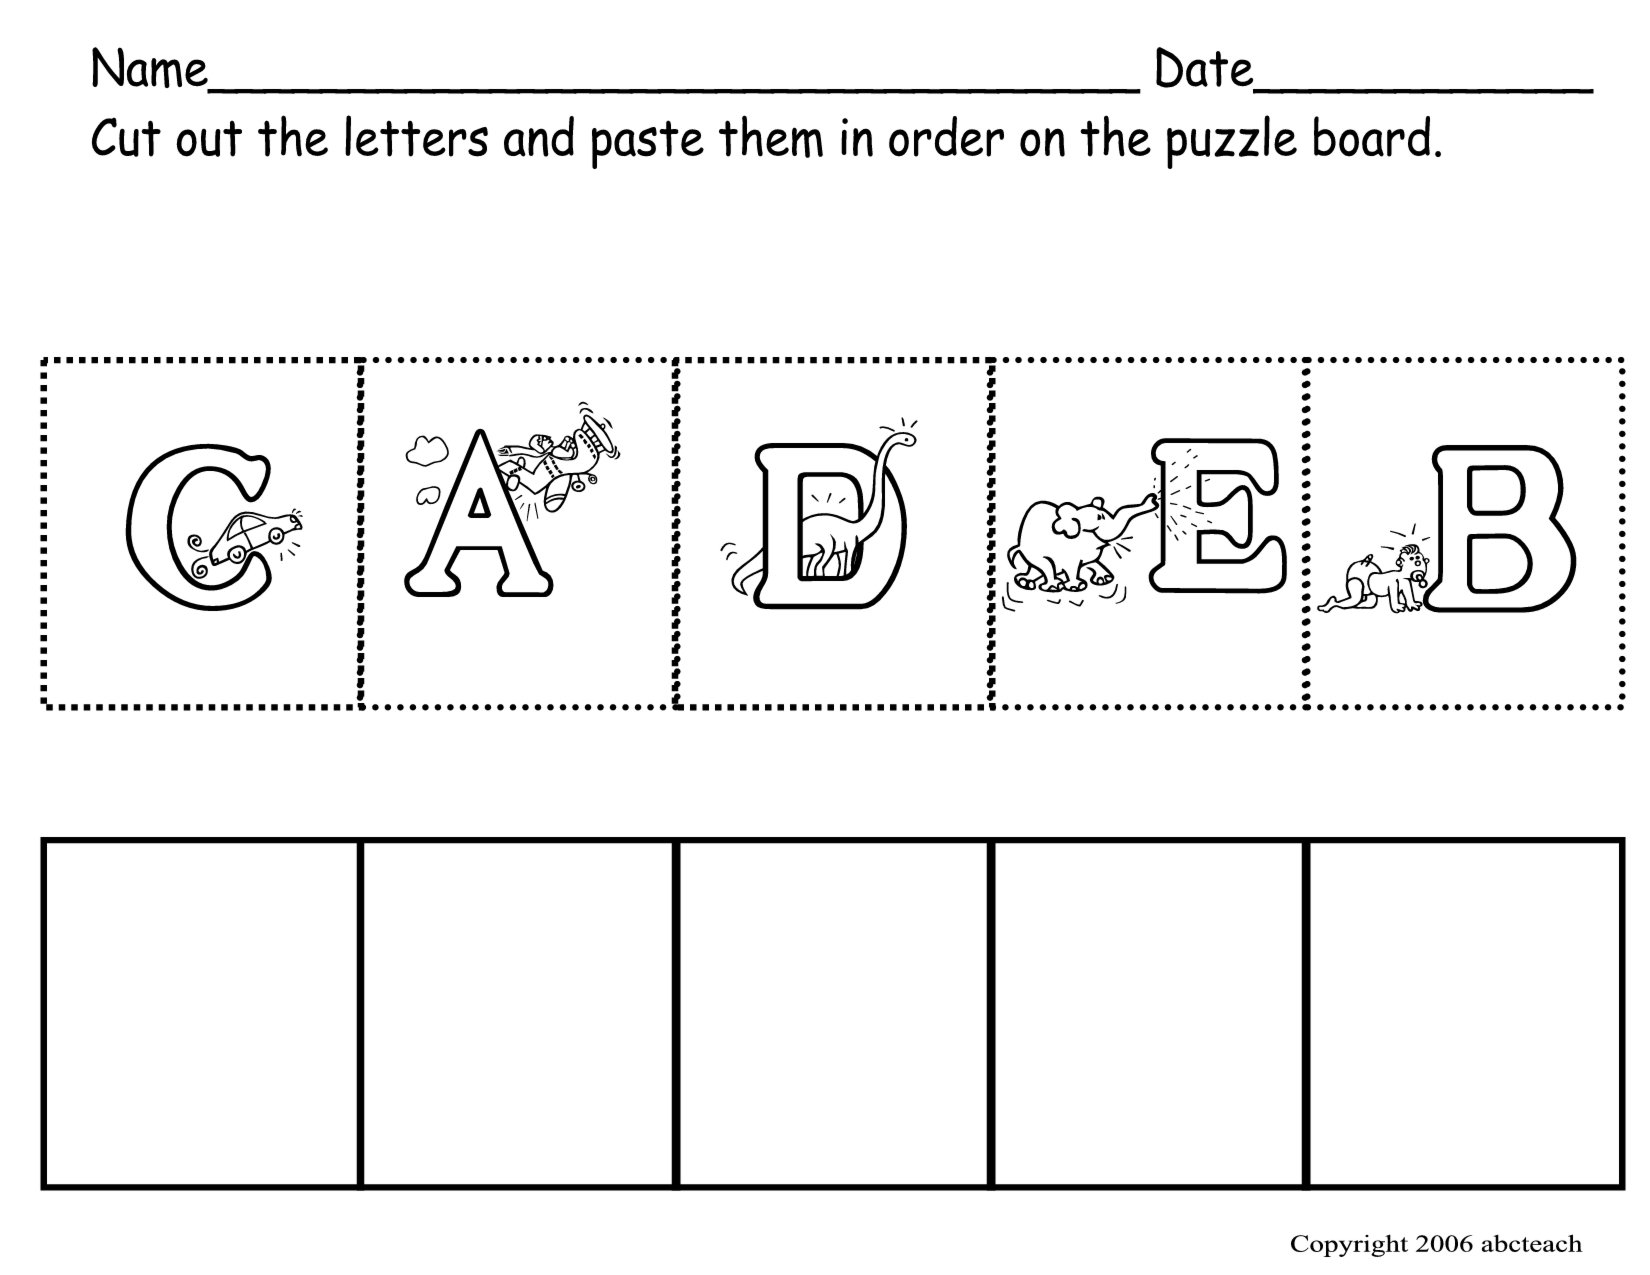 Alphabet Worksheets For Preschoolers | Abc Preschool intended for Alphabet Worksheets Preschool Pdf